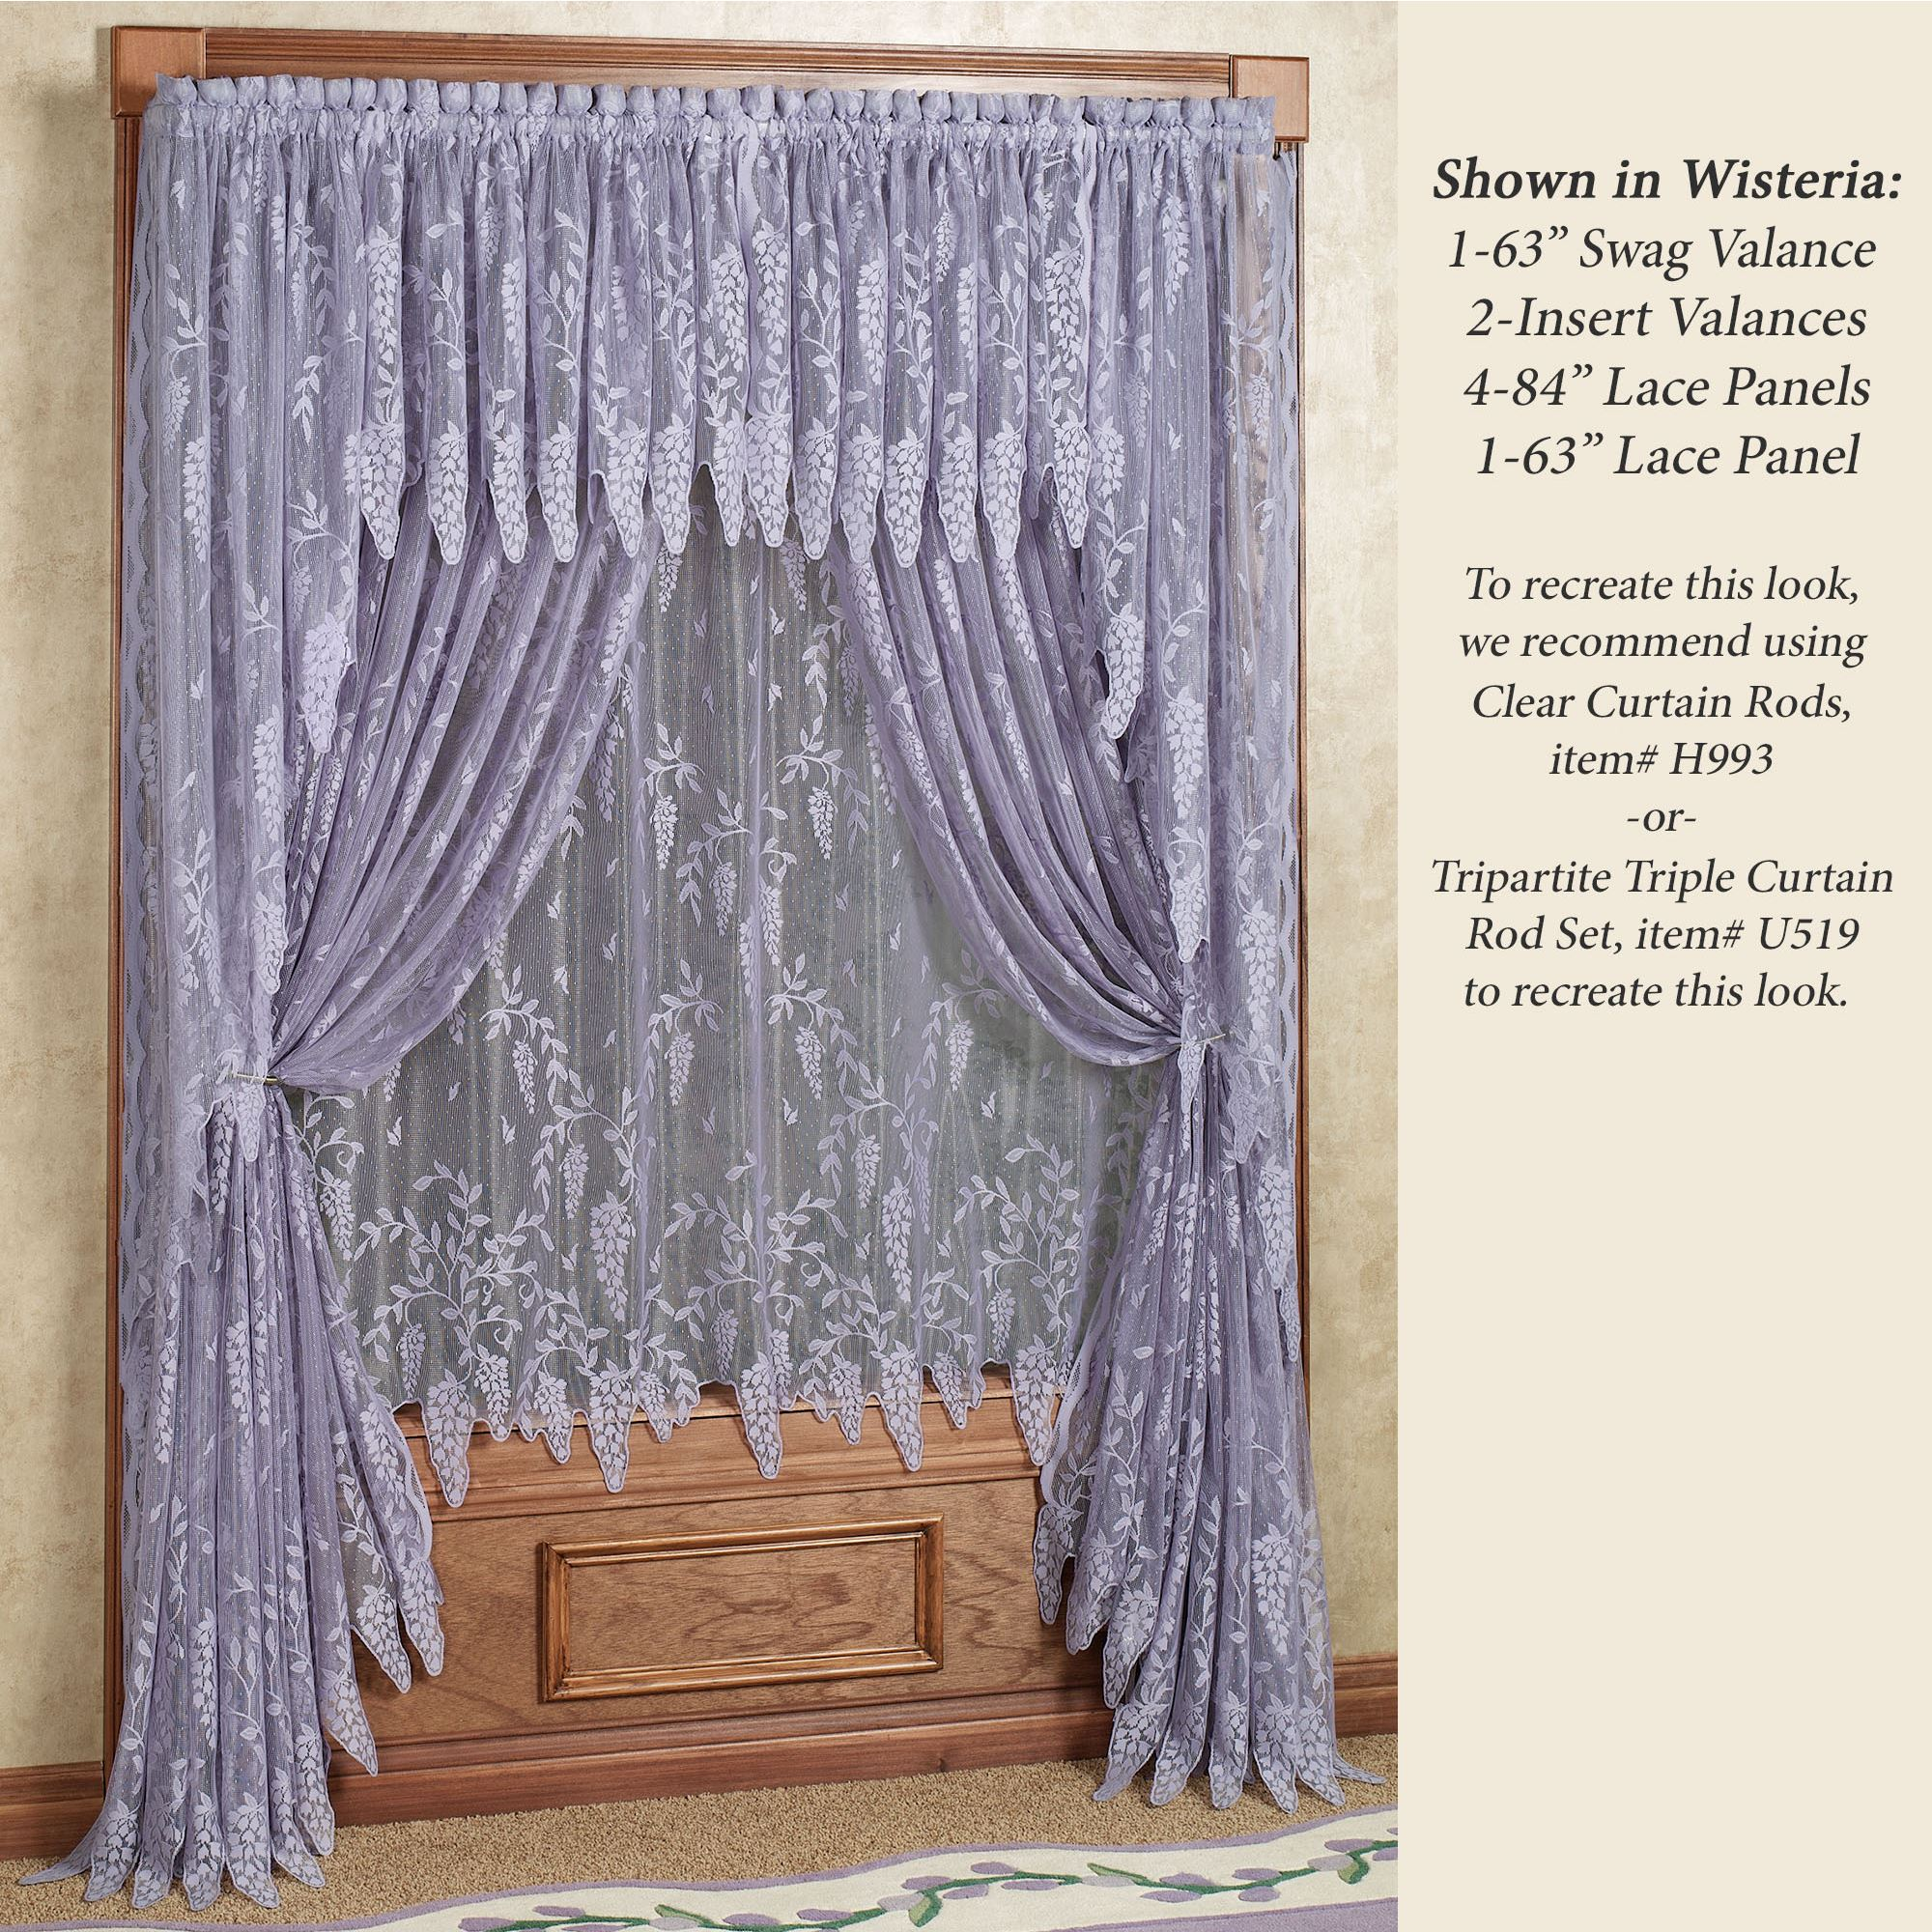 Lavender Sheer Curtains Wisteria Arbor Lace Valances And Curtain Panels